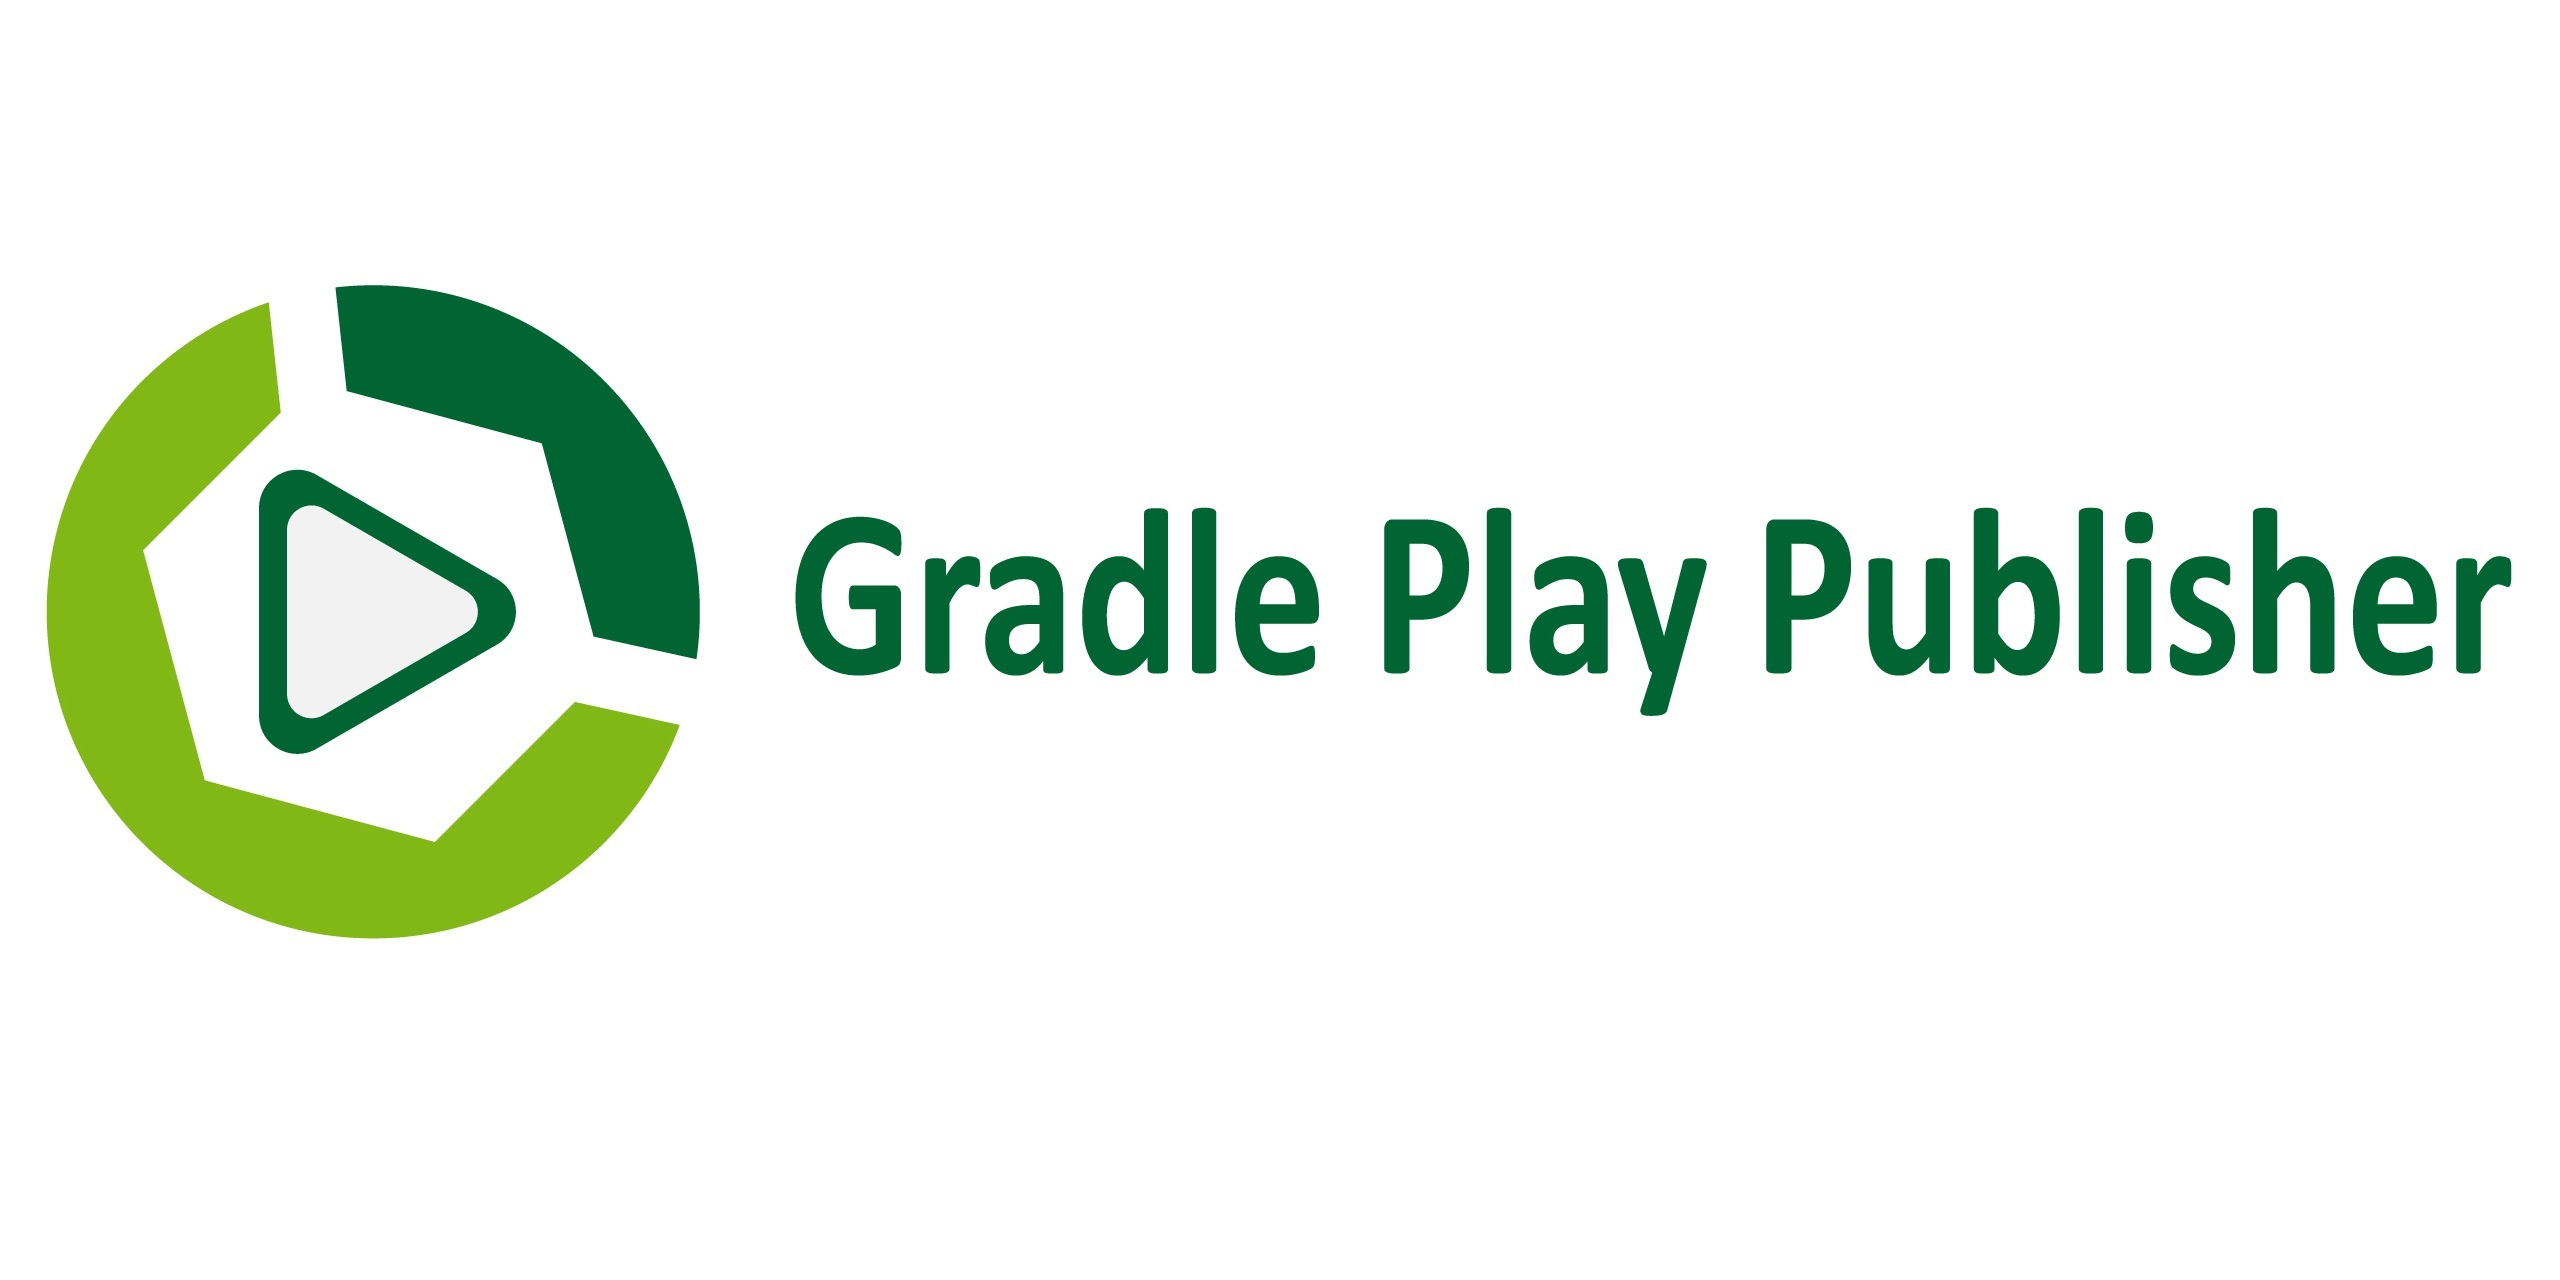 New Android App Bundle · Issue #262 · Triple-T/gradle-play-publisher